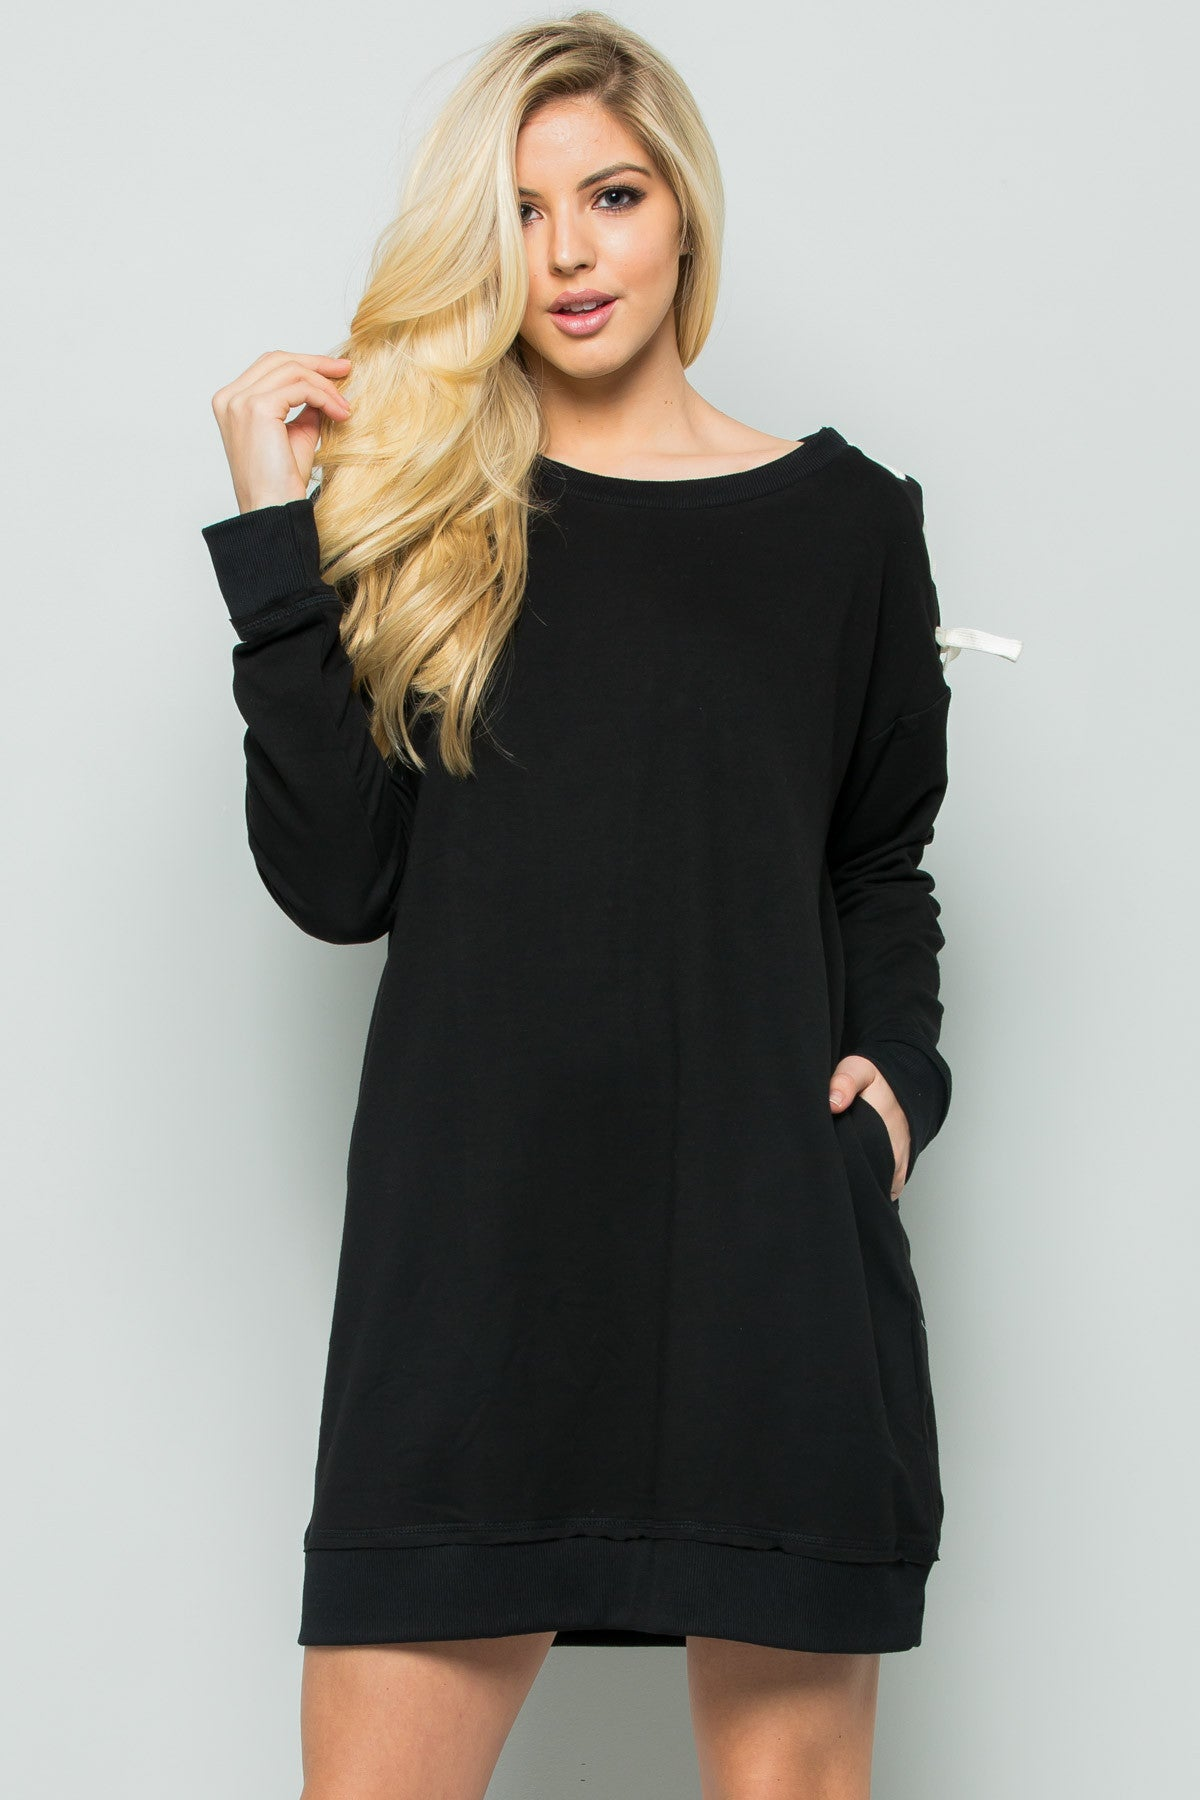 Shoulder Lace Up Sweater Dress in Black - Dresses - My Yuccie - 2